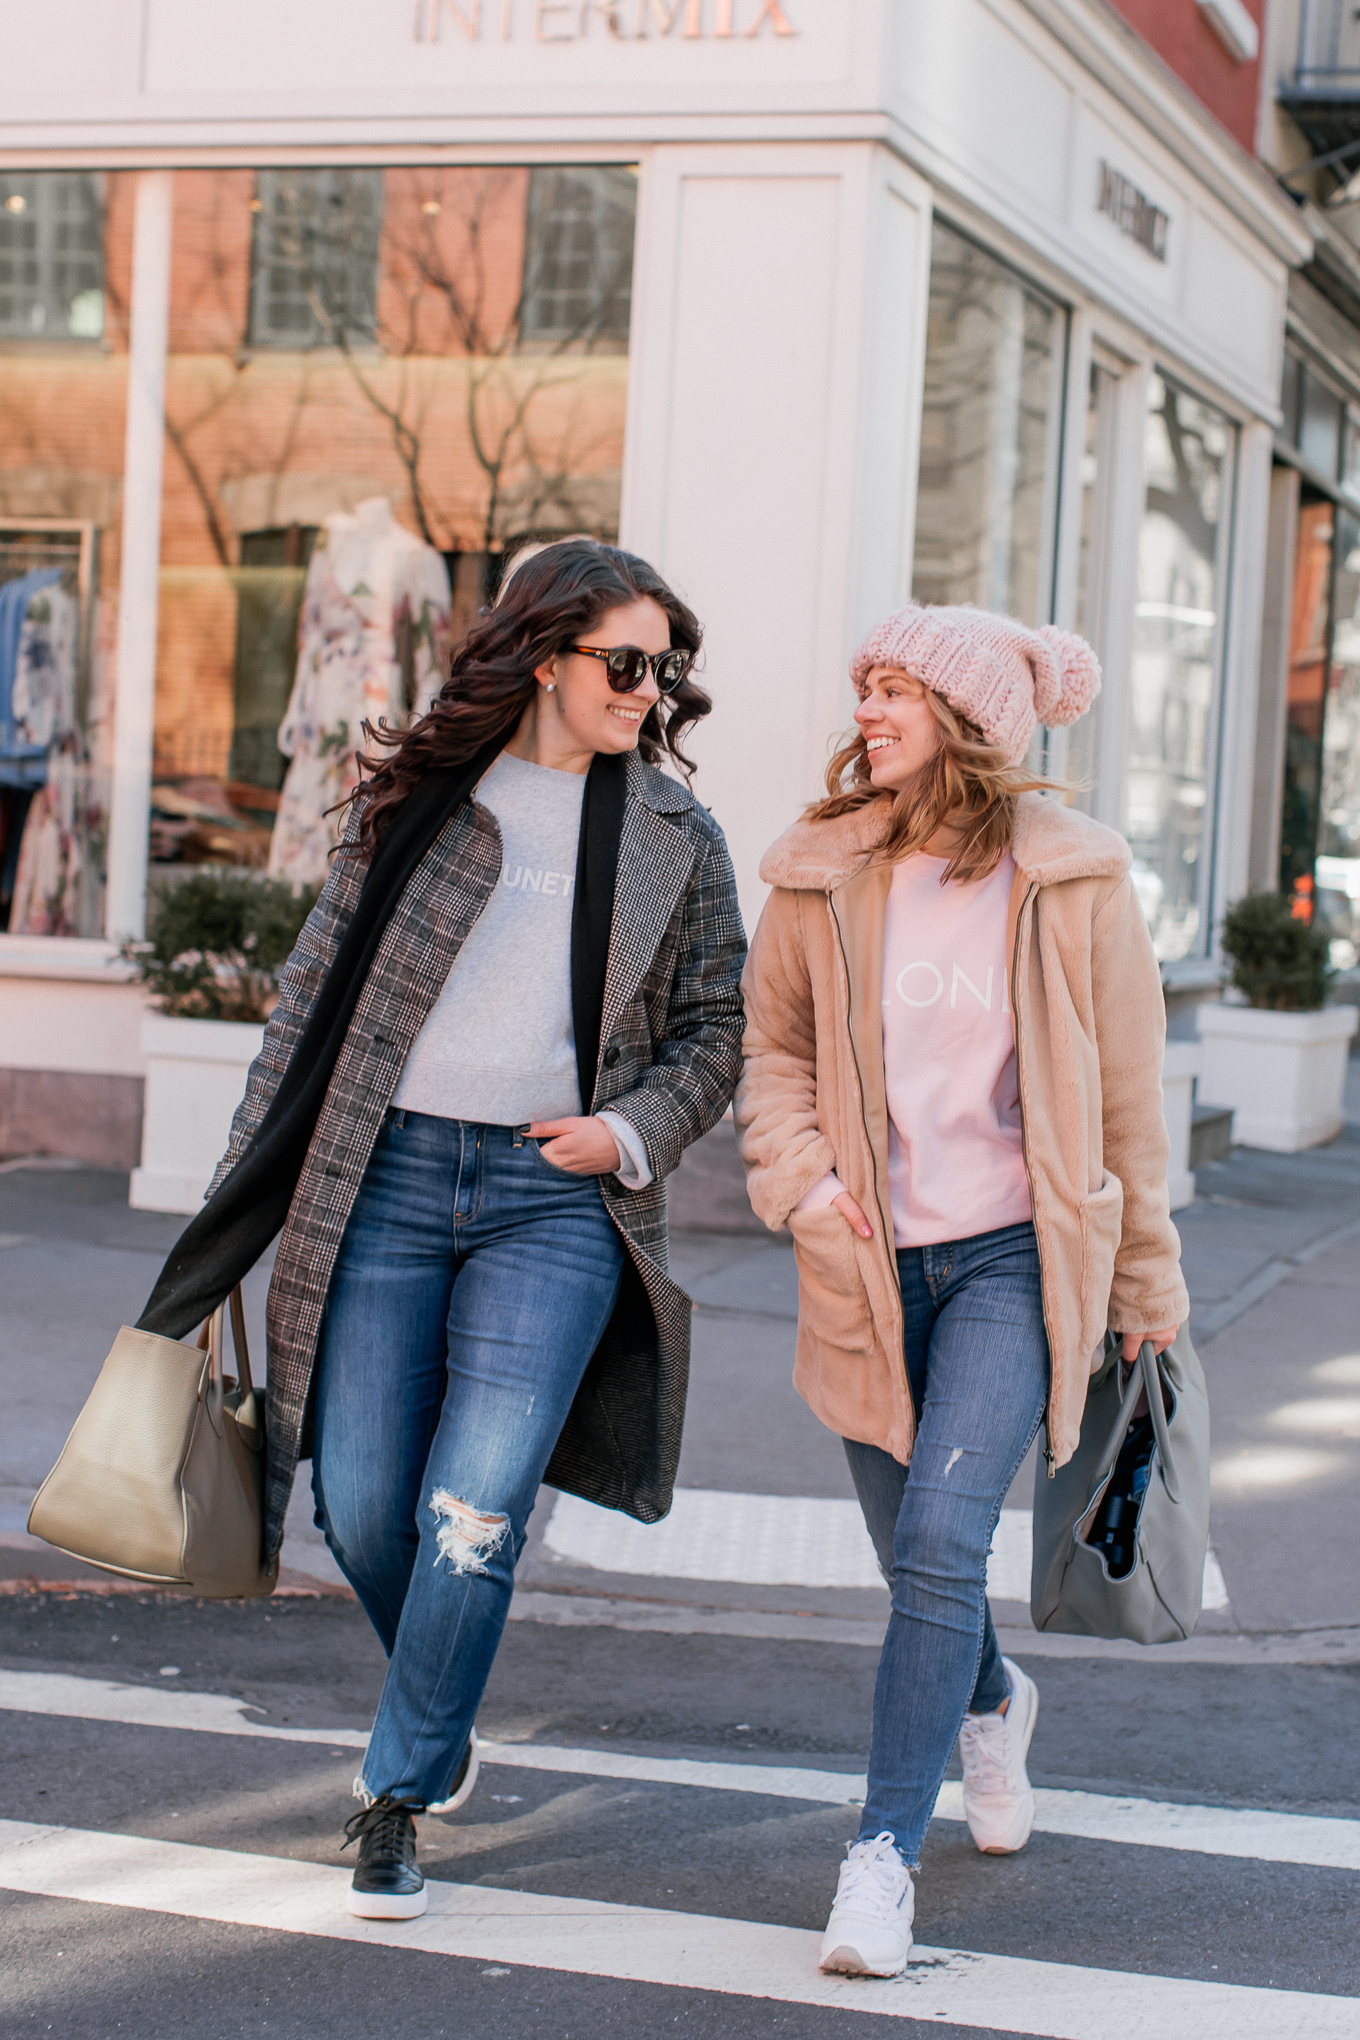 What to do with your girl friends for Galentine's Day this year | Louella Reese